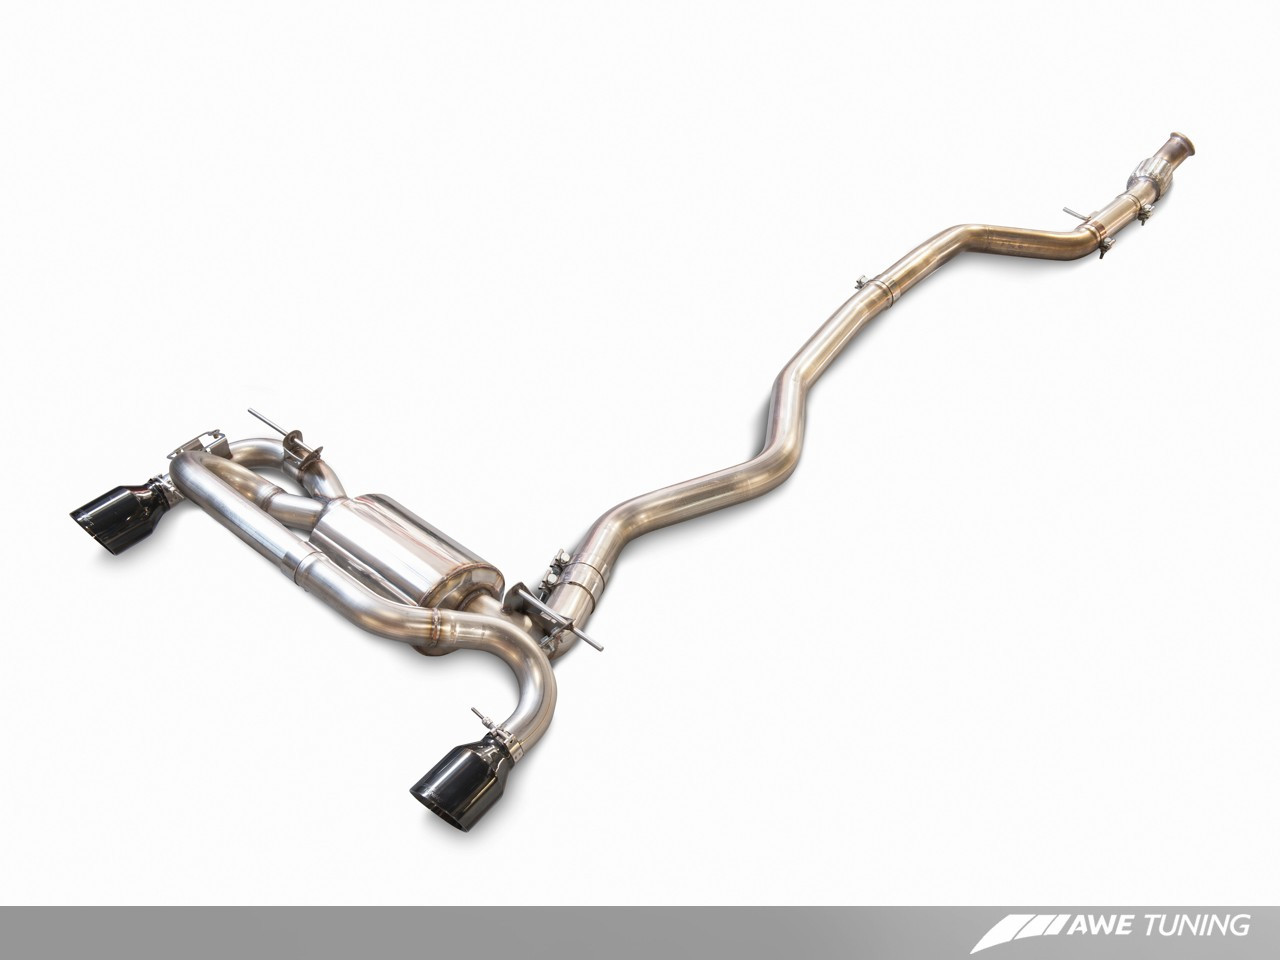 AWE Tuning BMW F3x 335i Touring Edition Exhaust - Shown with Optional Extra Performance Mid-Pipe